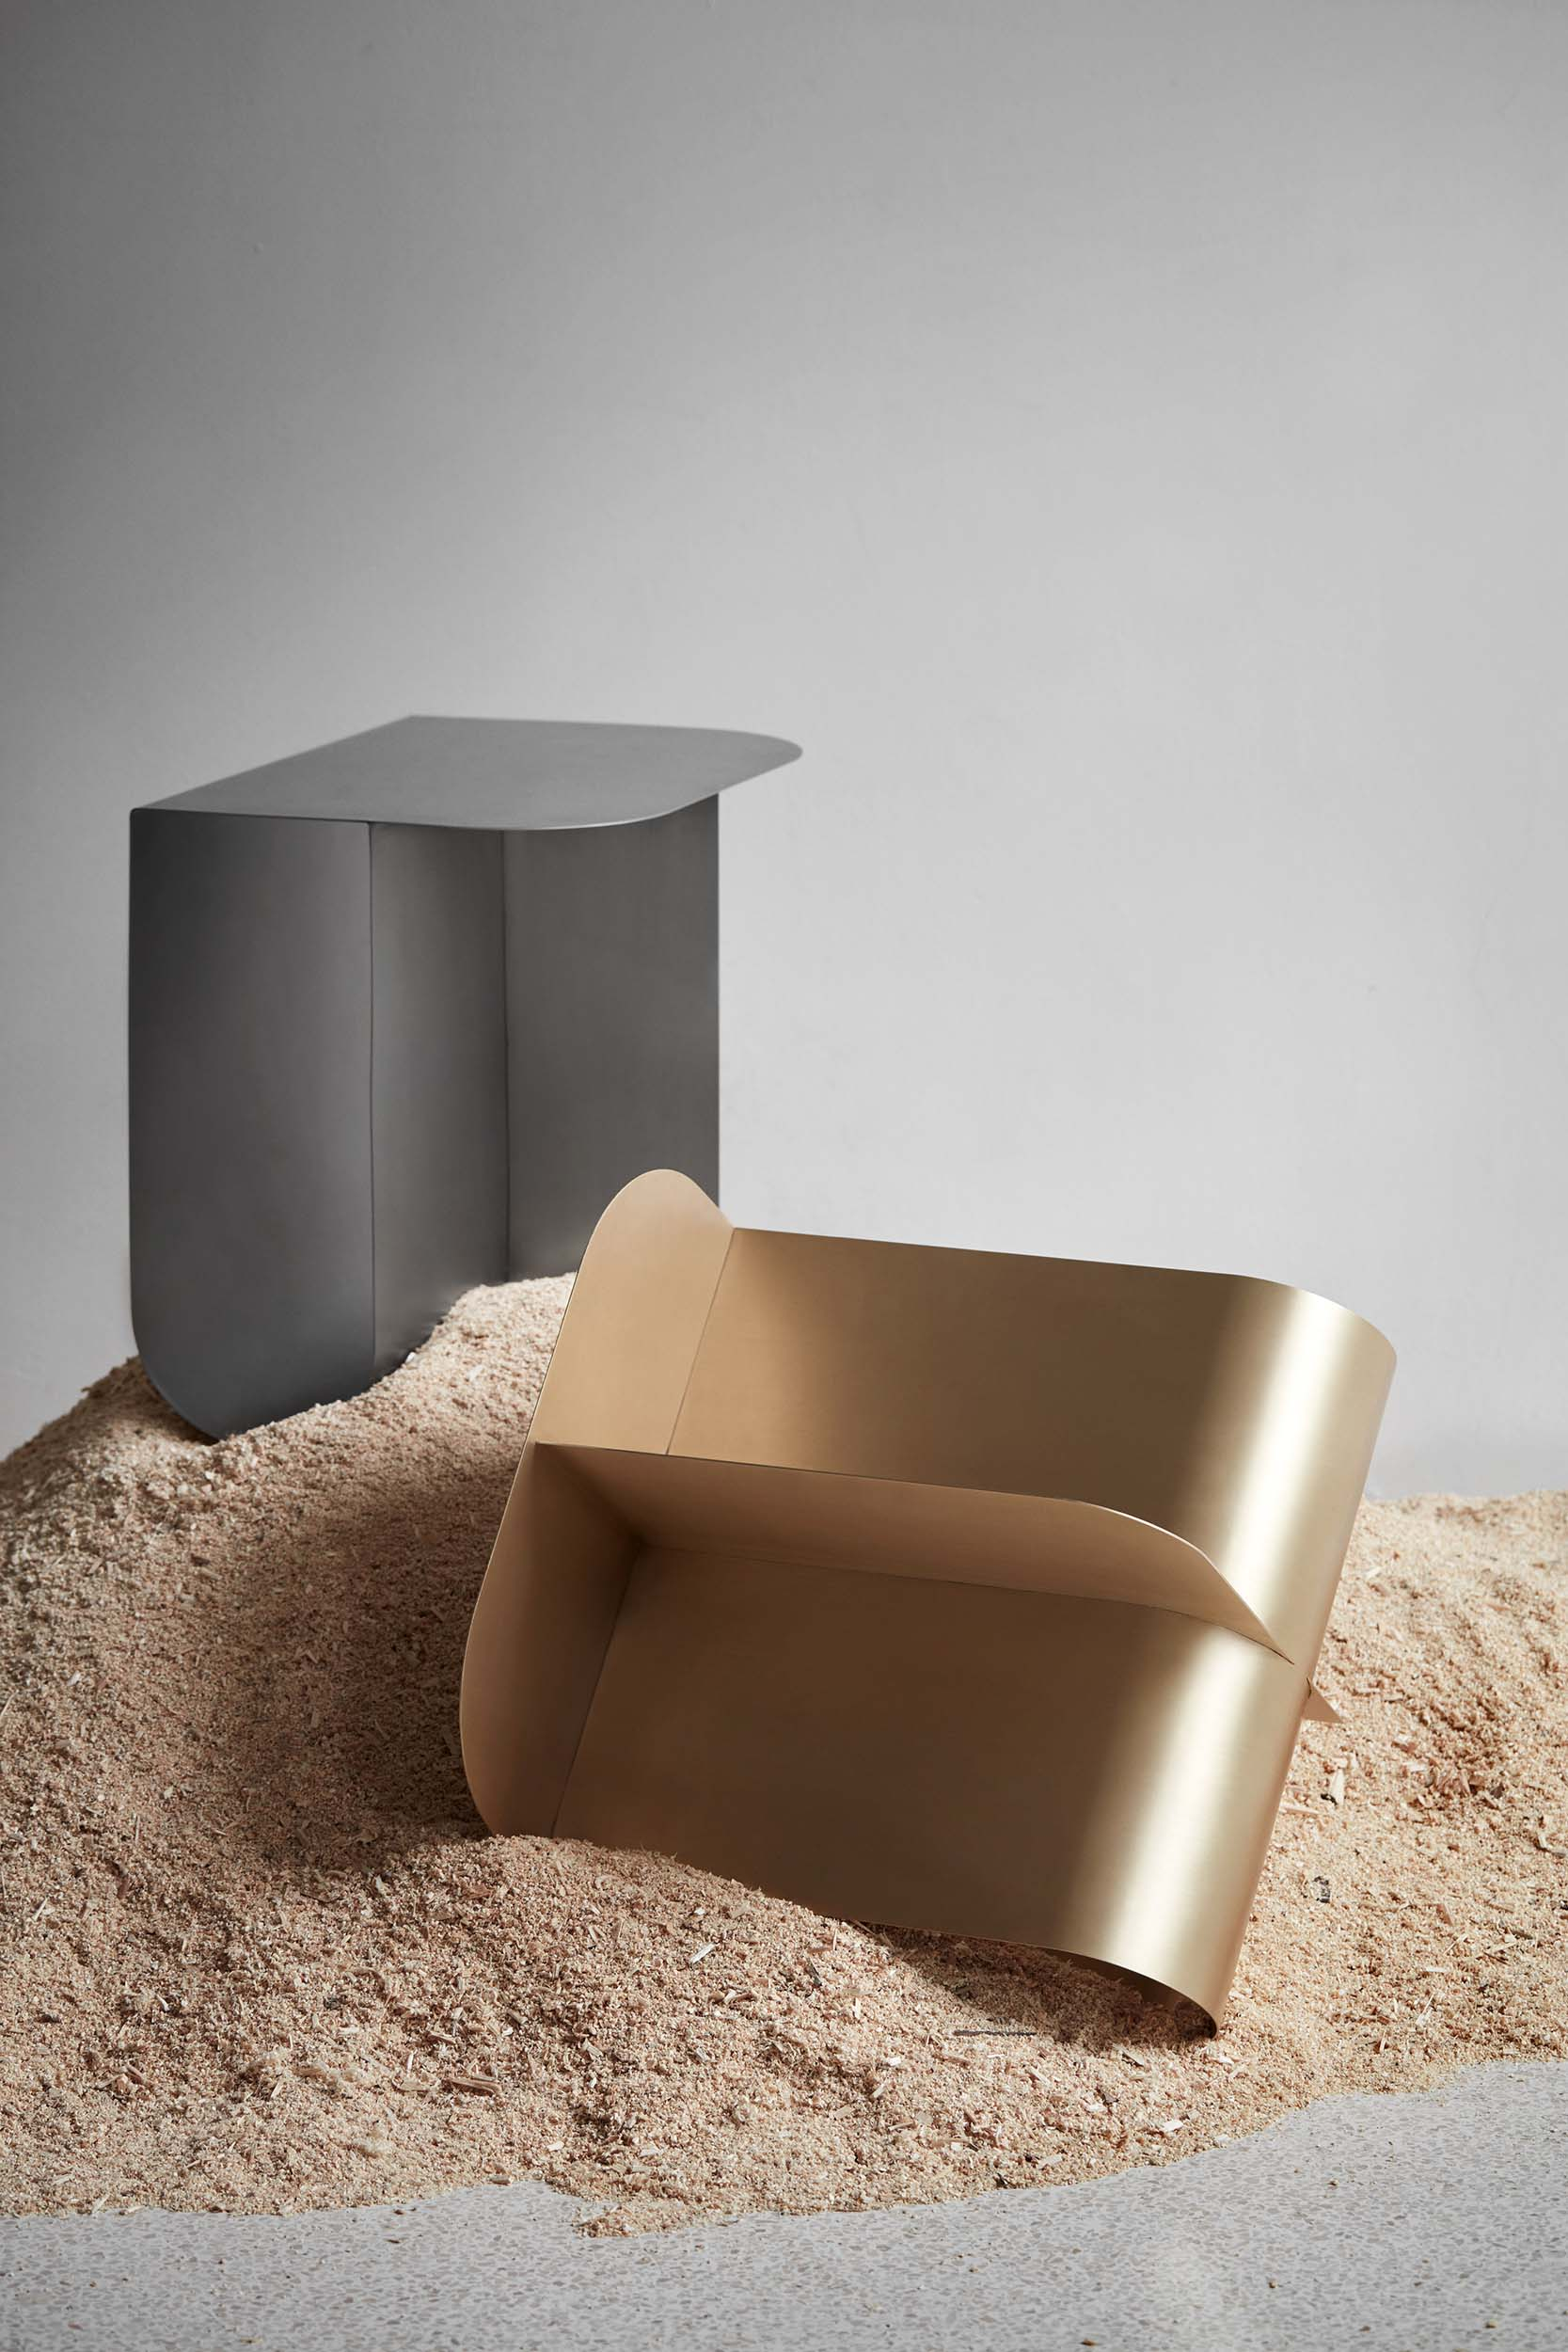 Mass_table_steel_brass_sawdust_Northern_photo_Chris_Tonnesen-Low-res